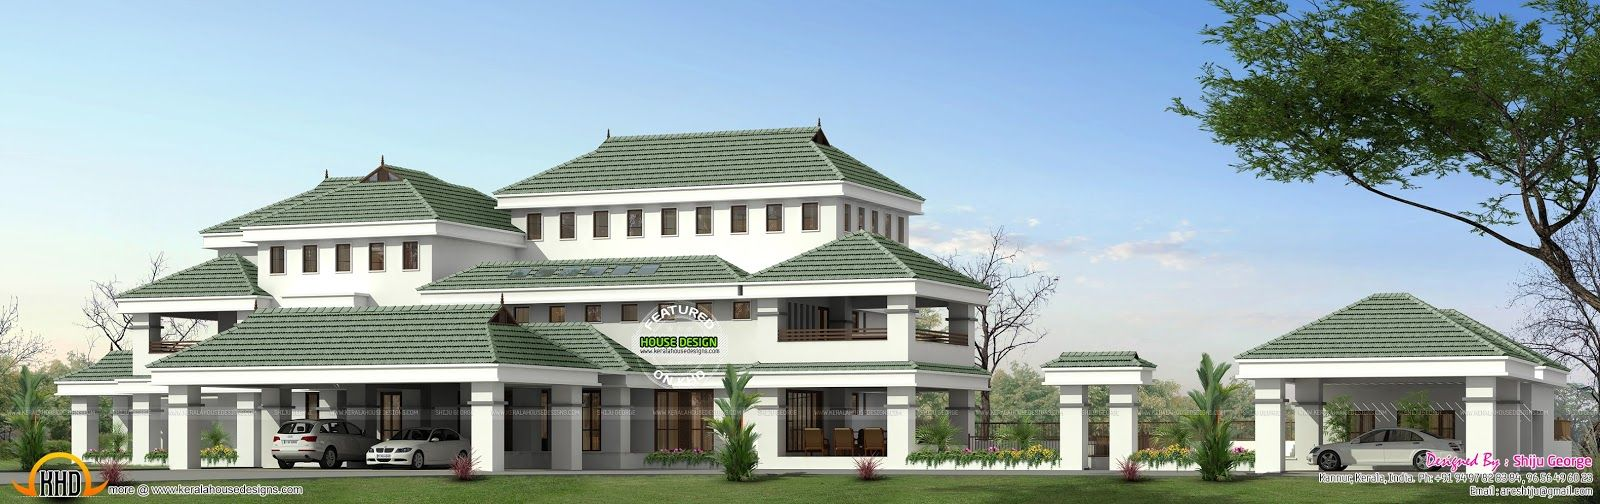 House plan kerala home design and floor plans facilities details ground